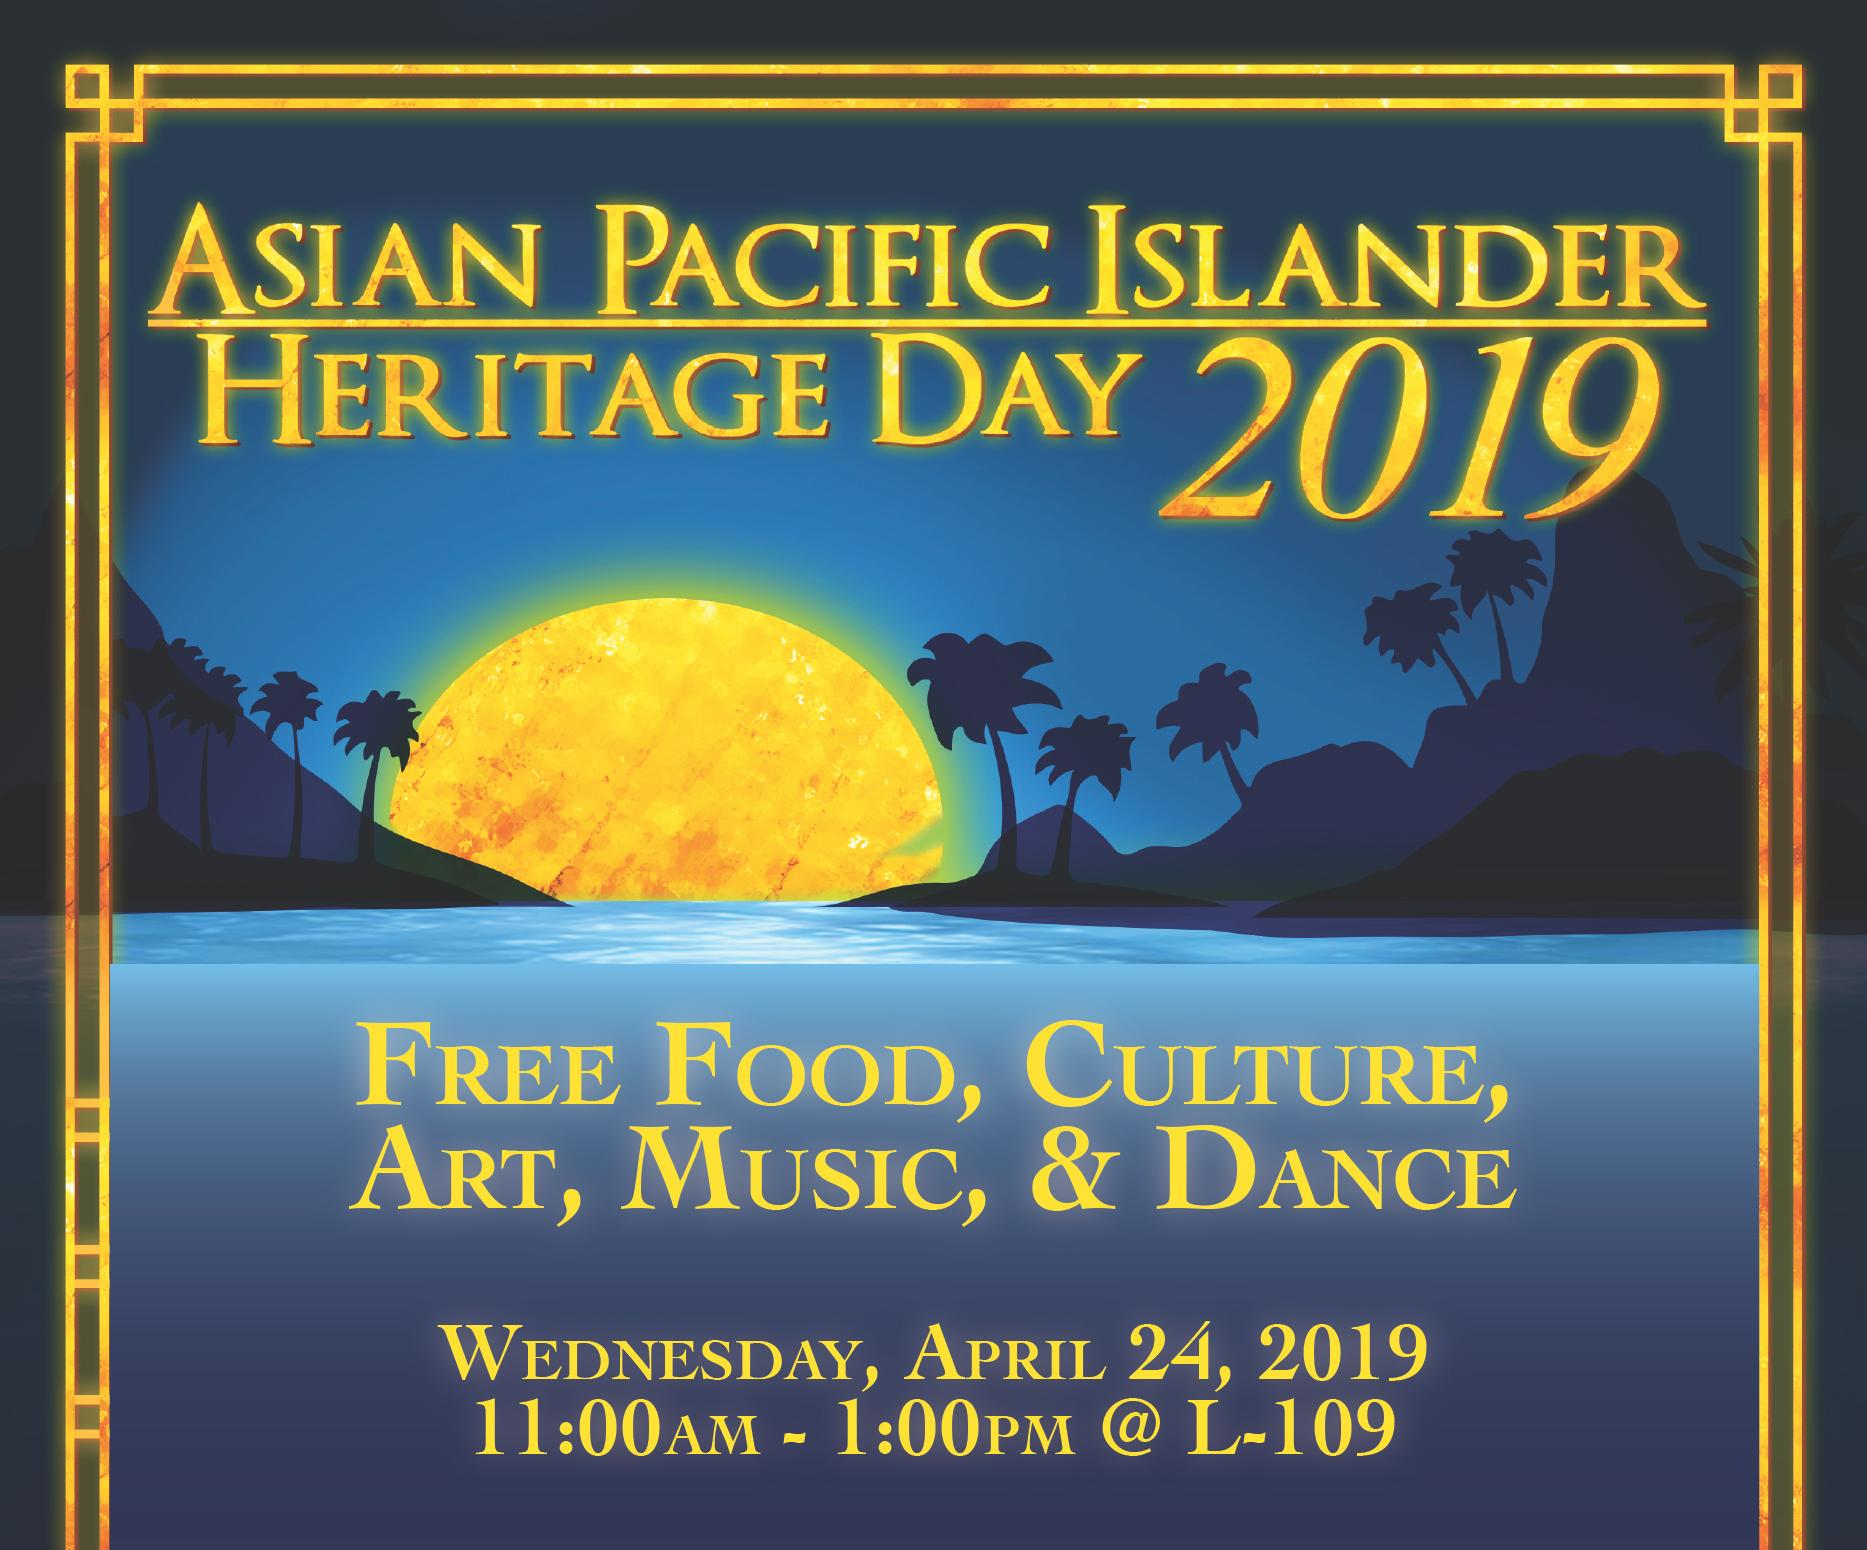 Asian Pacific Islander Heritage Day